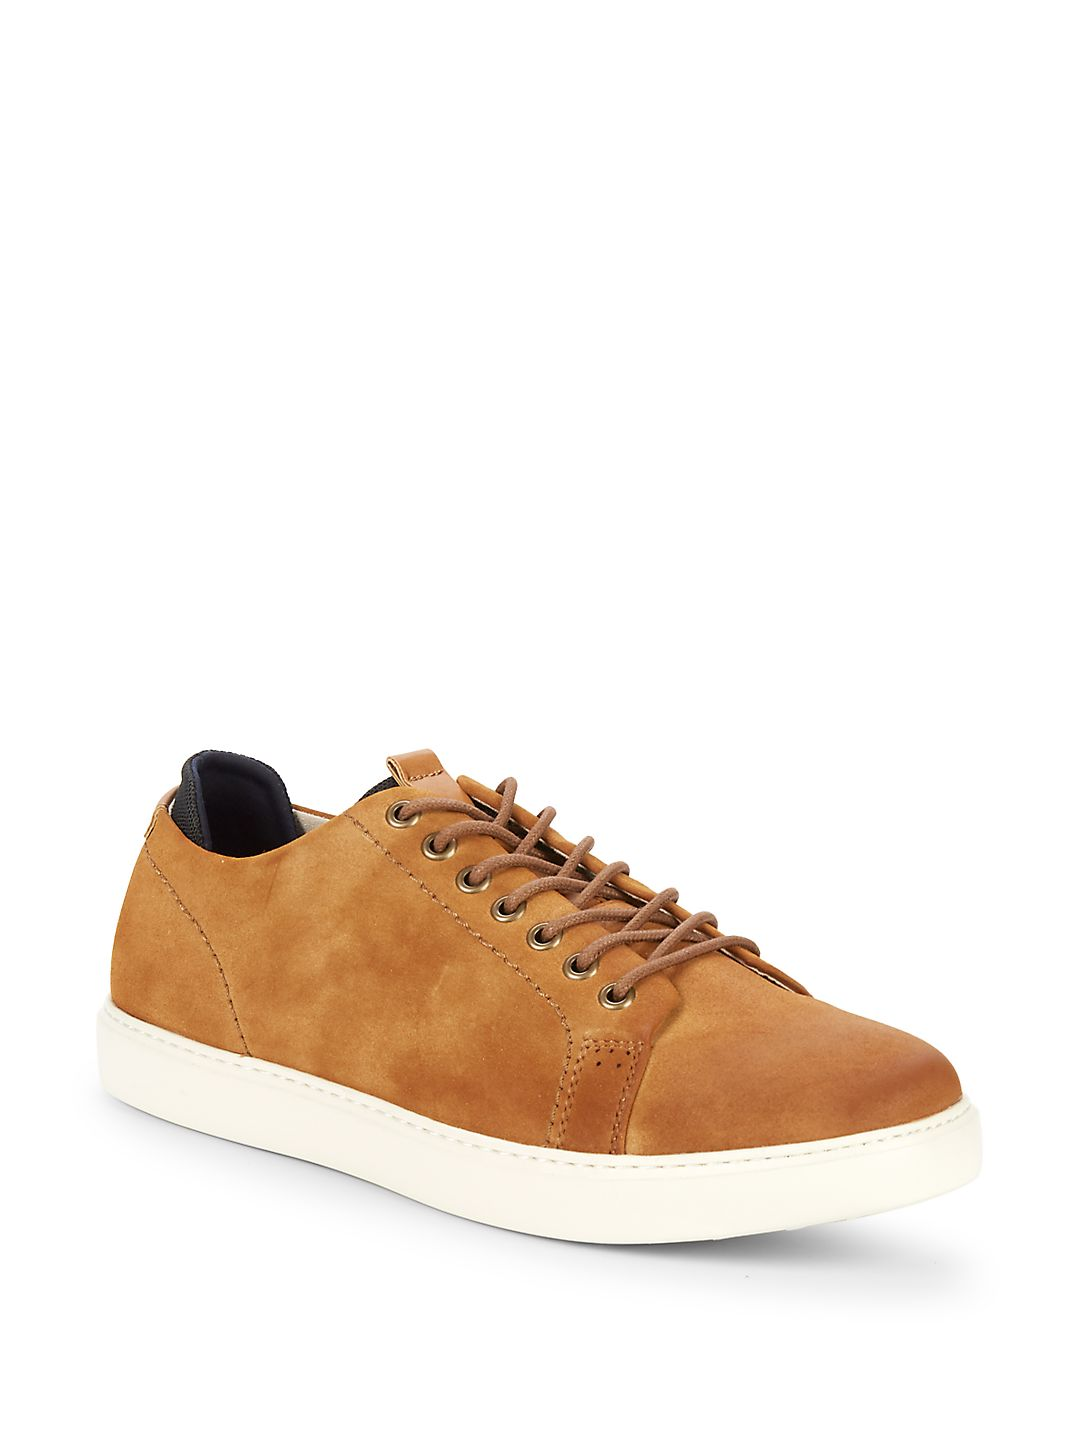 Indy Low-Top Sneakers